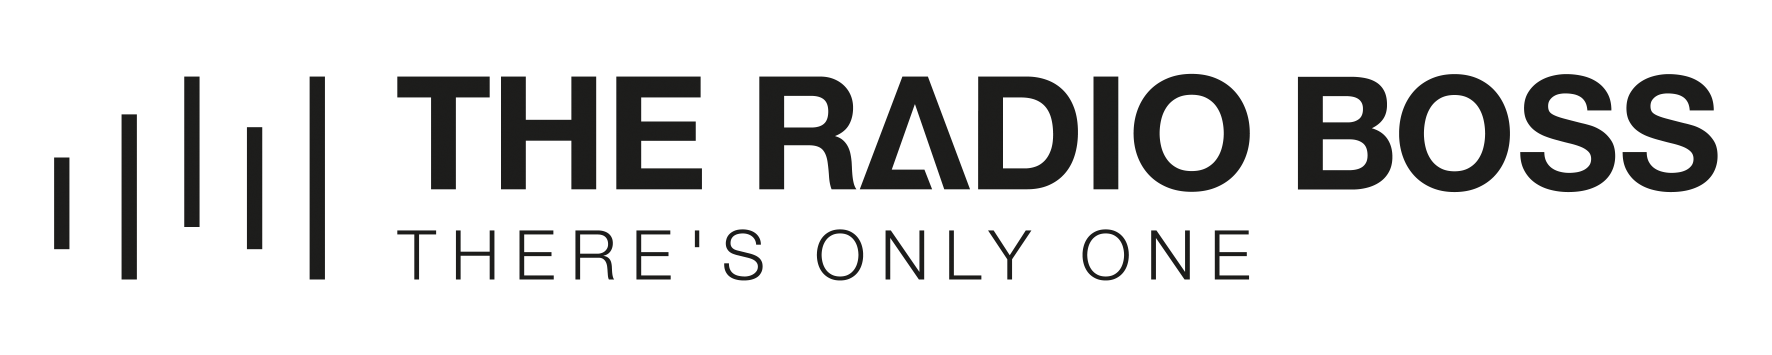 Design a powerful, bold, confident logo for The Radio Boss